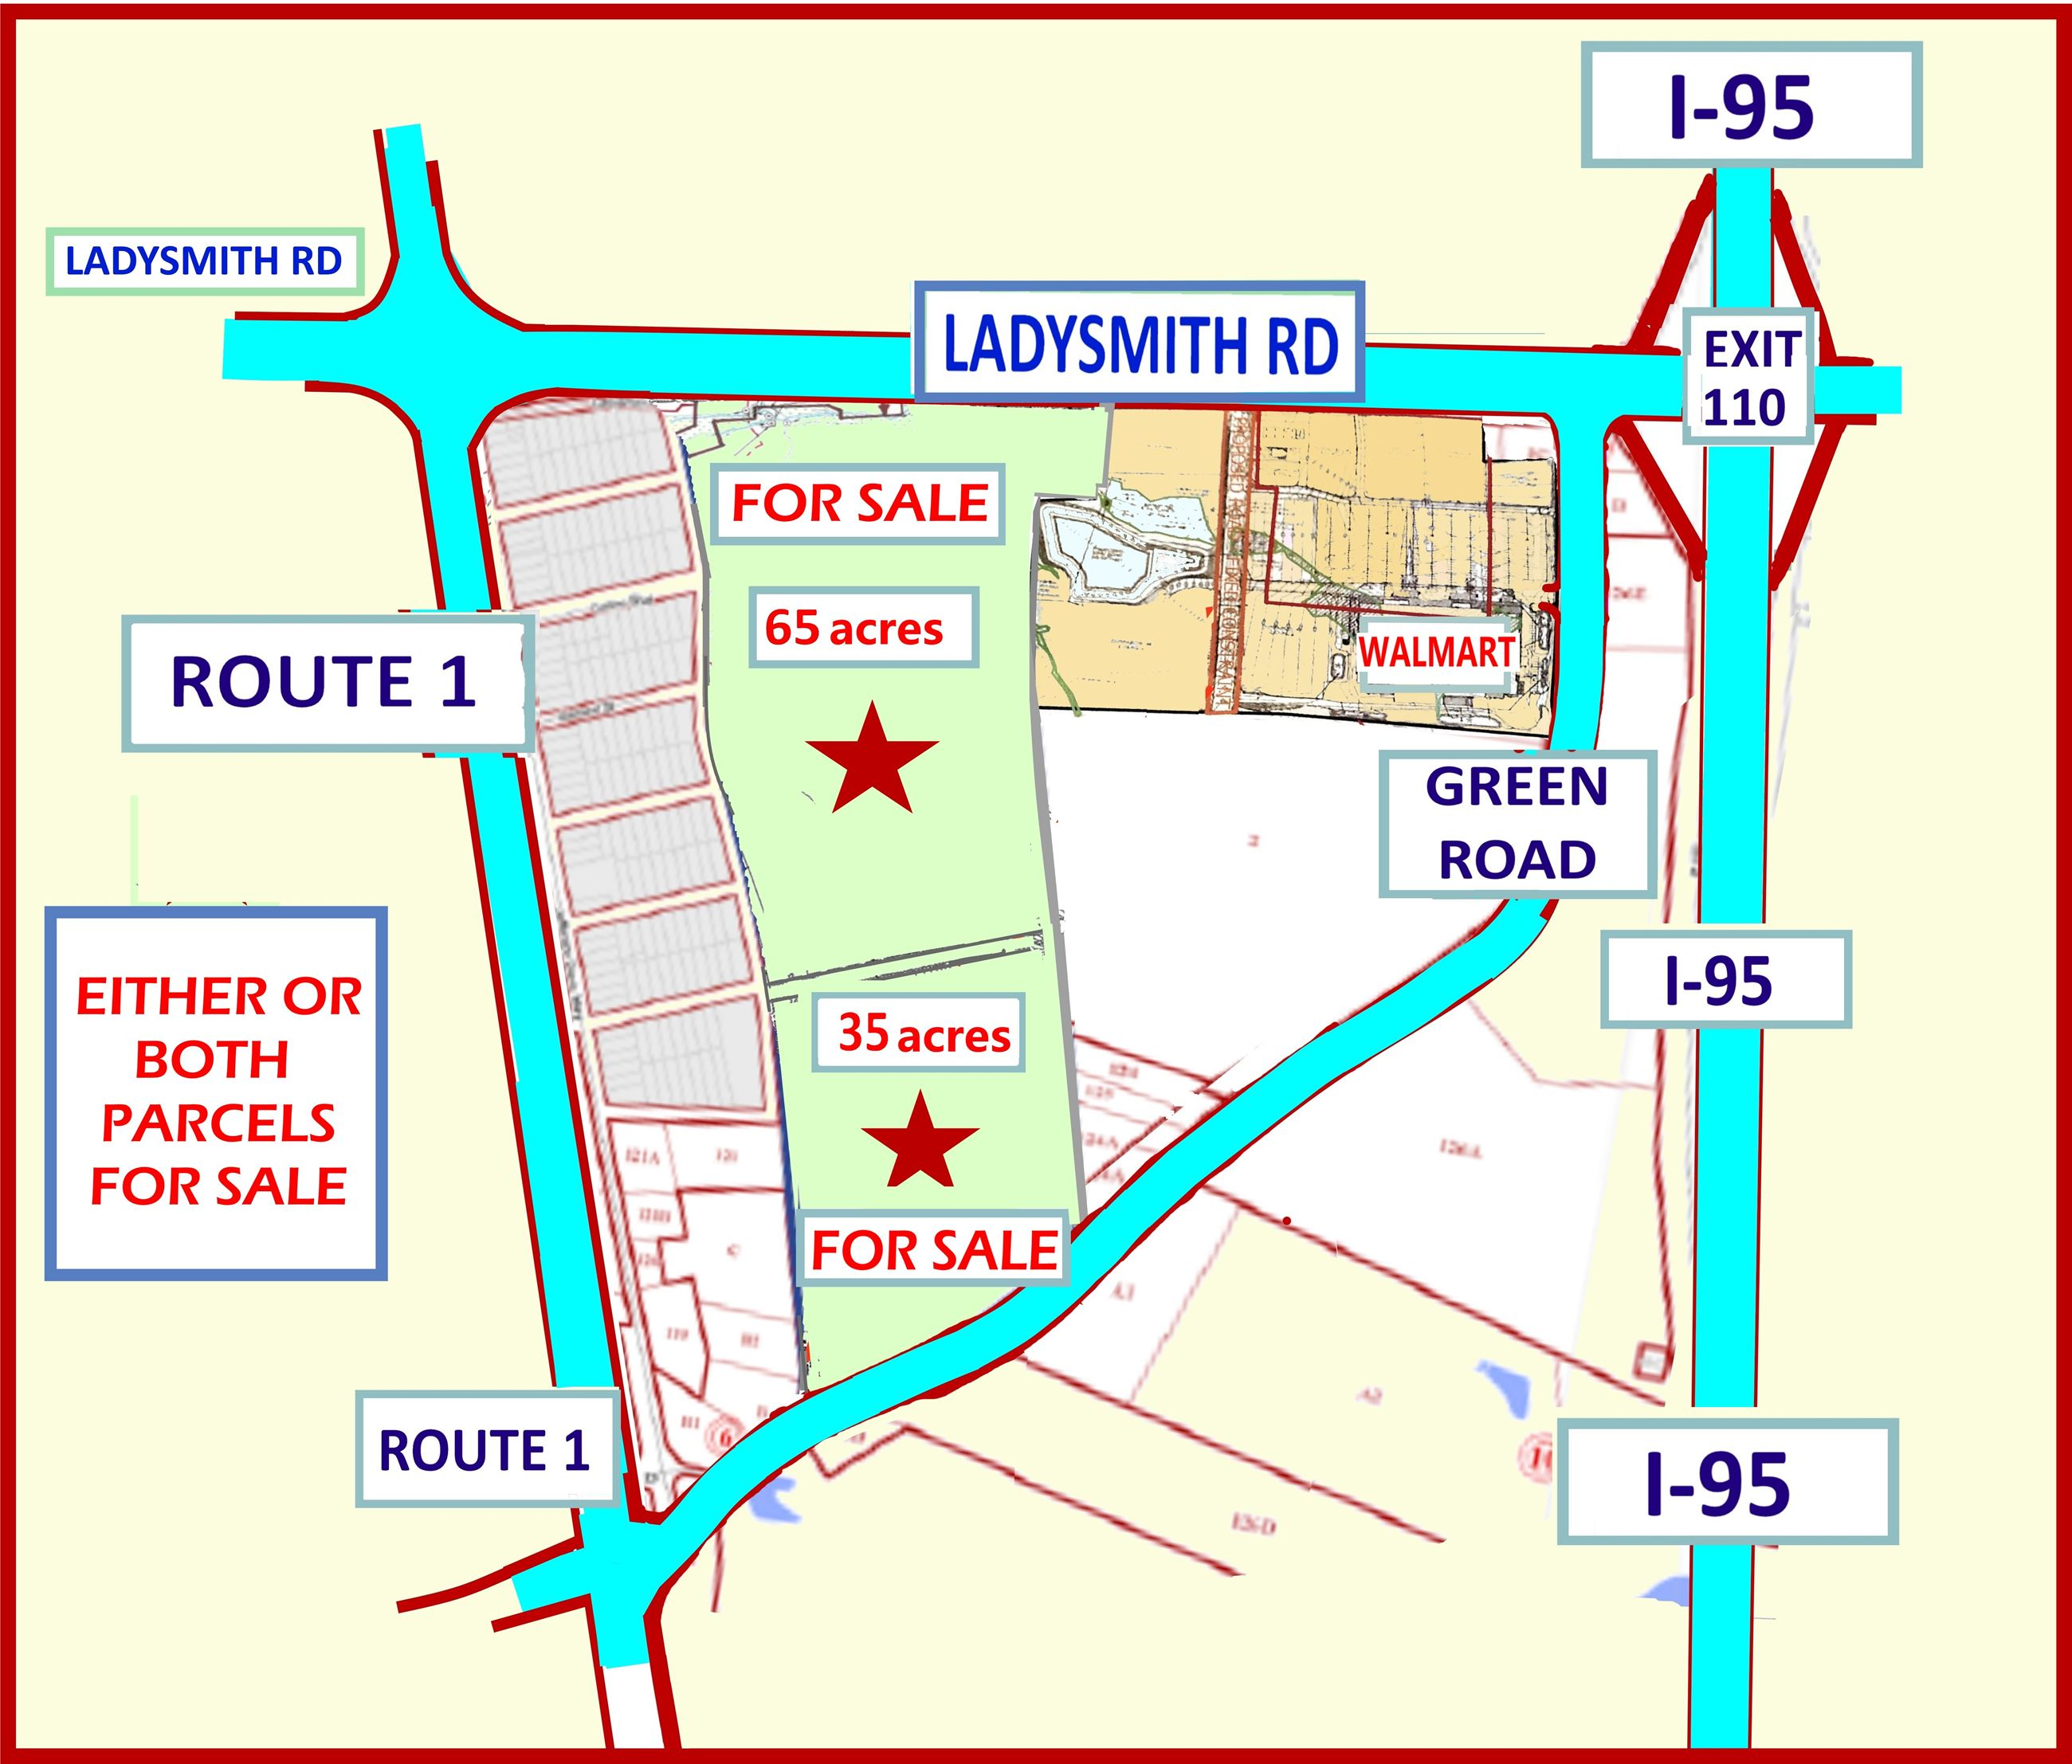 Hamlet - 65-100 Acres at Ladysmith Road and Green